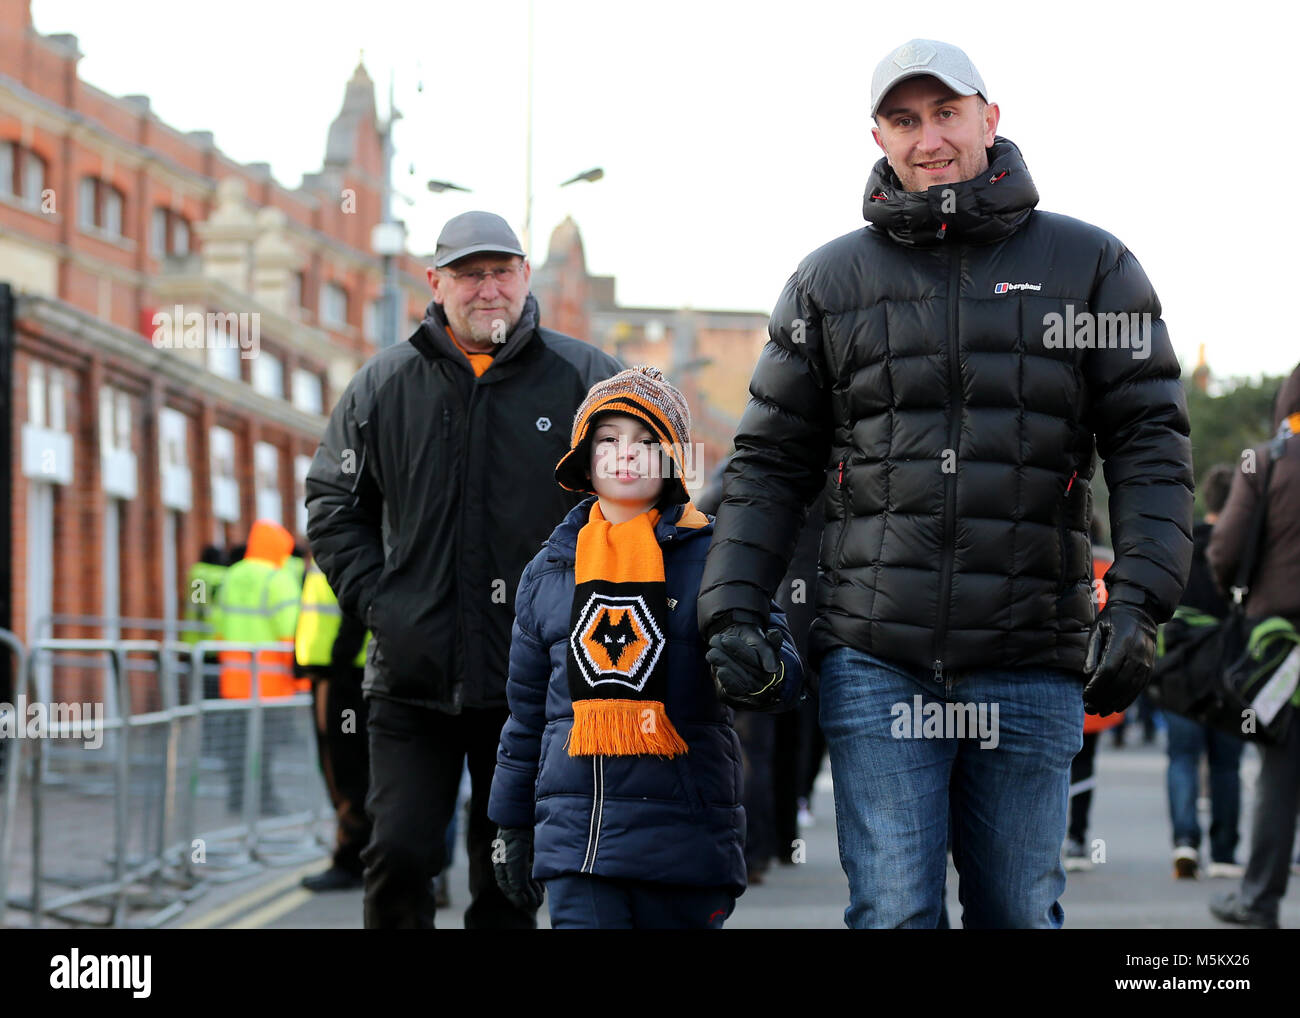 Wolves fans make their way to the ground before the Championship match at Craven Cottage, London. - Stock Image